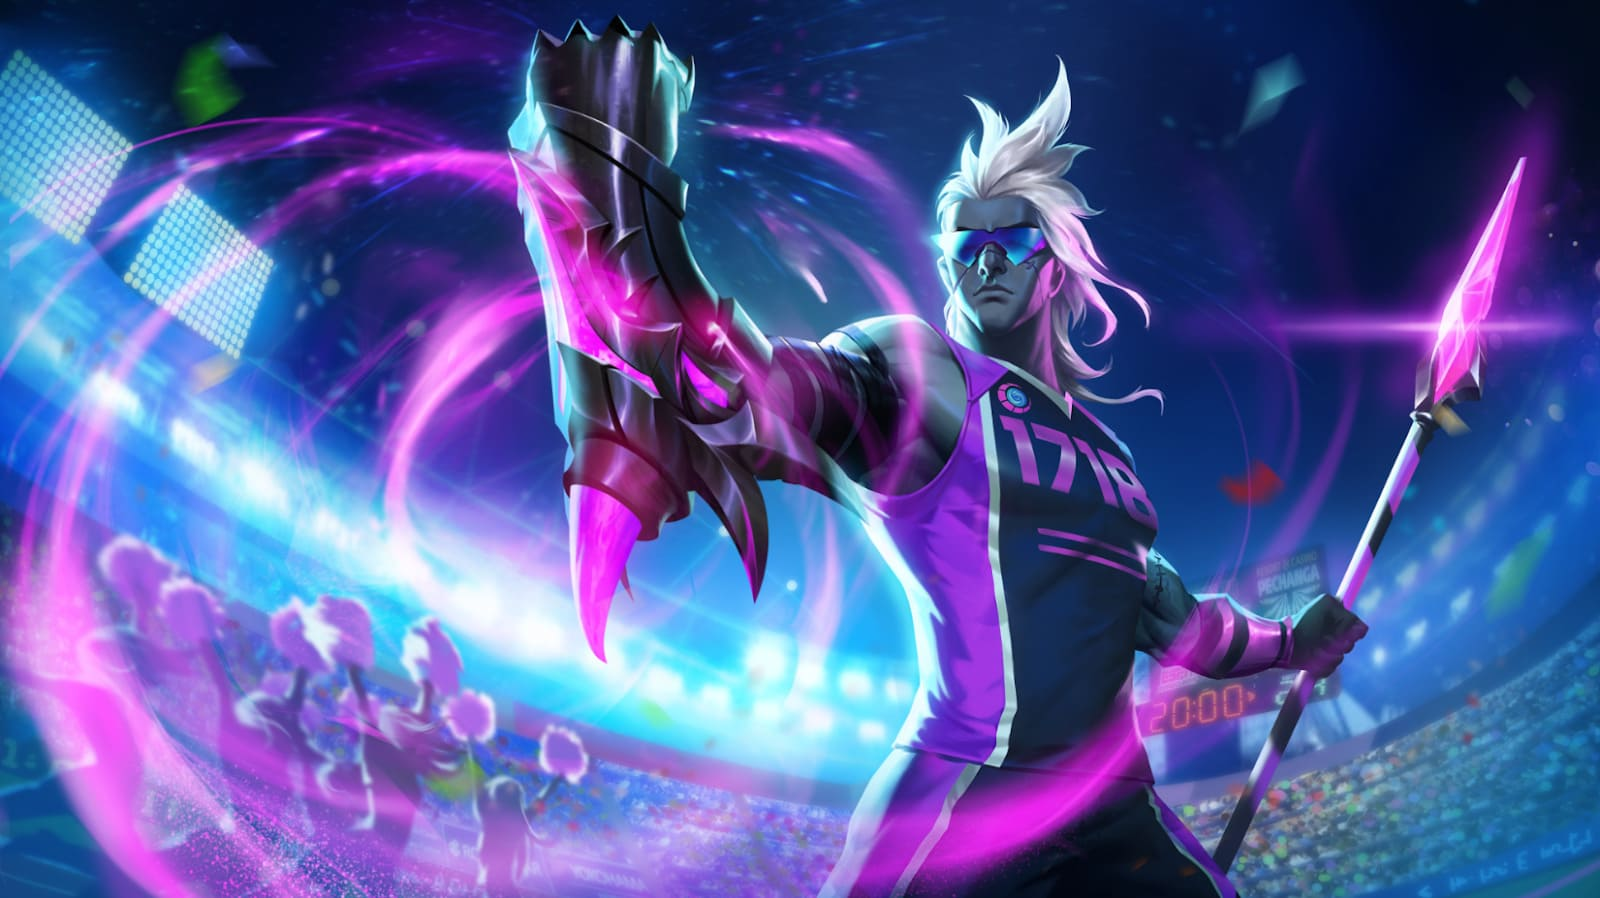 Wallpaper Moskov Javelin Champion Skin Mobile Legends Full HD for PC